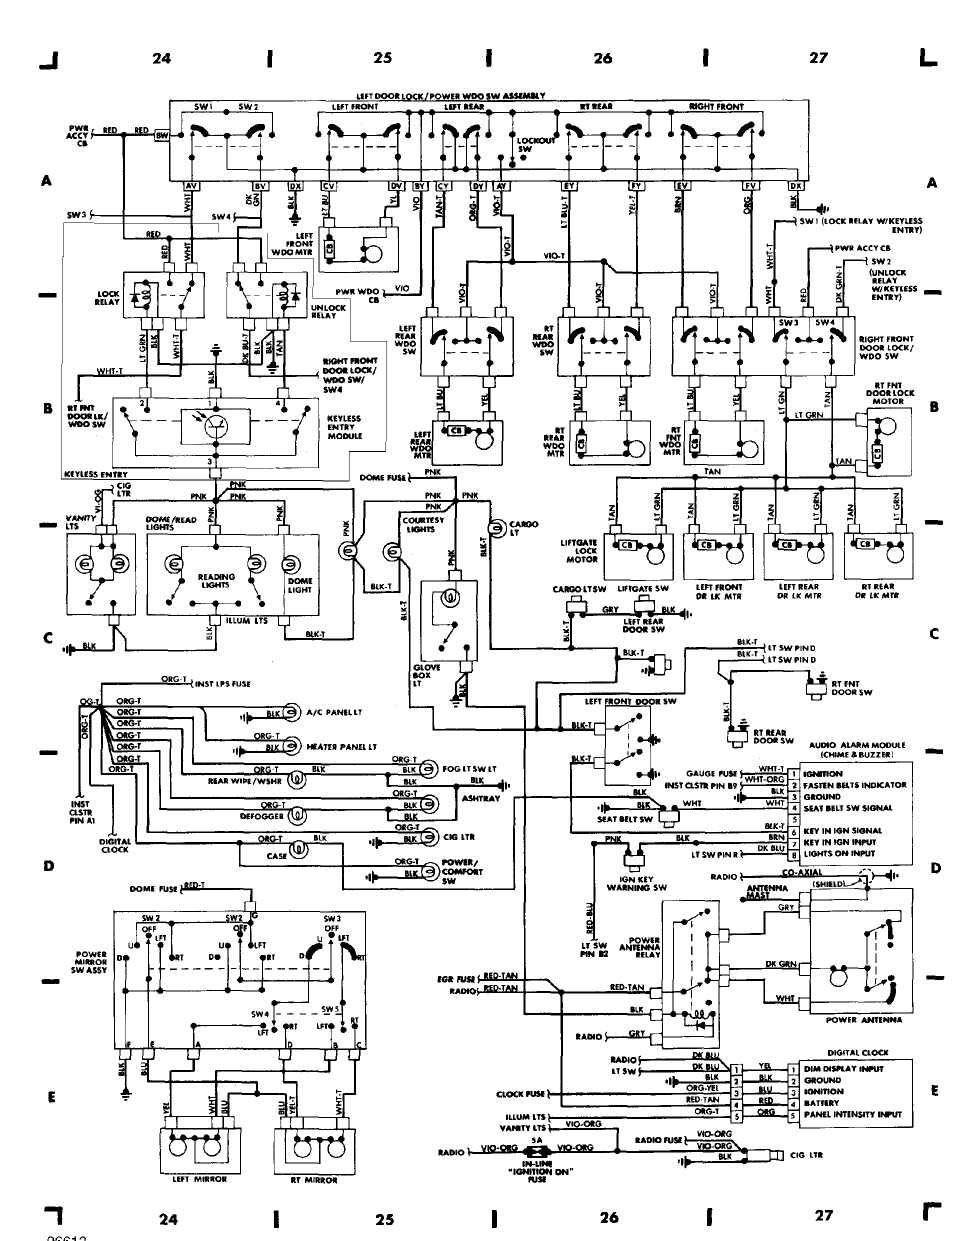 wiring_diagrams_html_61f5e0ad 2000 jeep xj wiring diagram 1998 jeep cherokee wiring diagrams pdf  at reclaimingppi.co